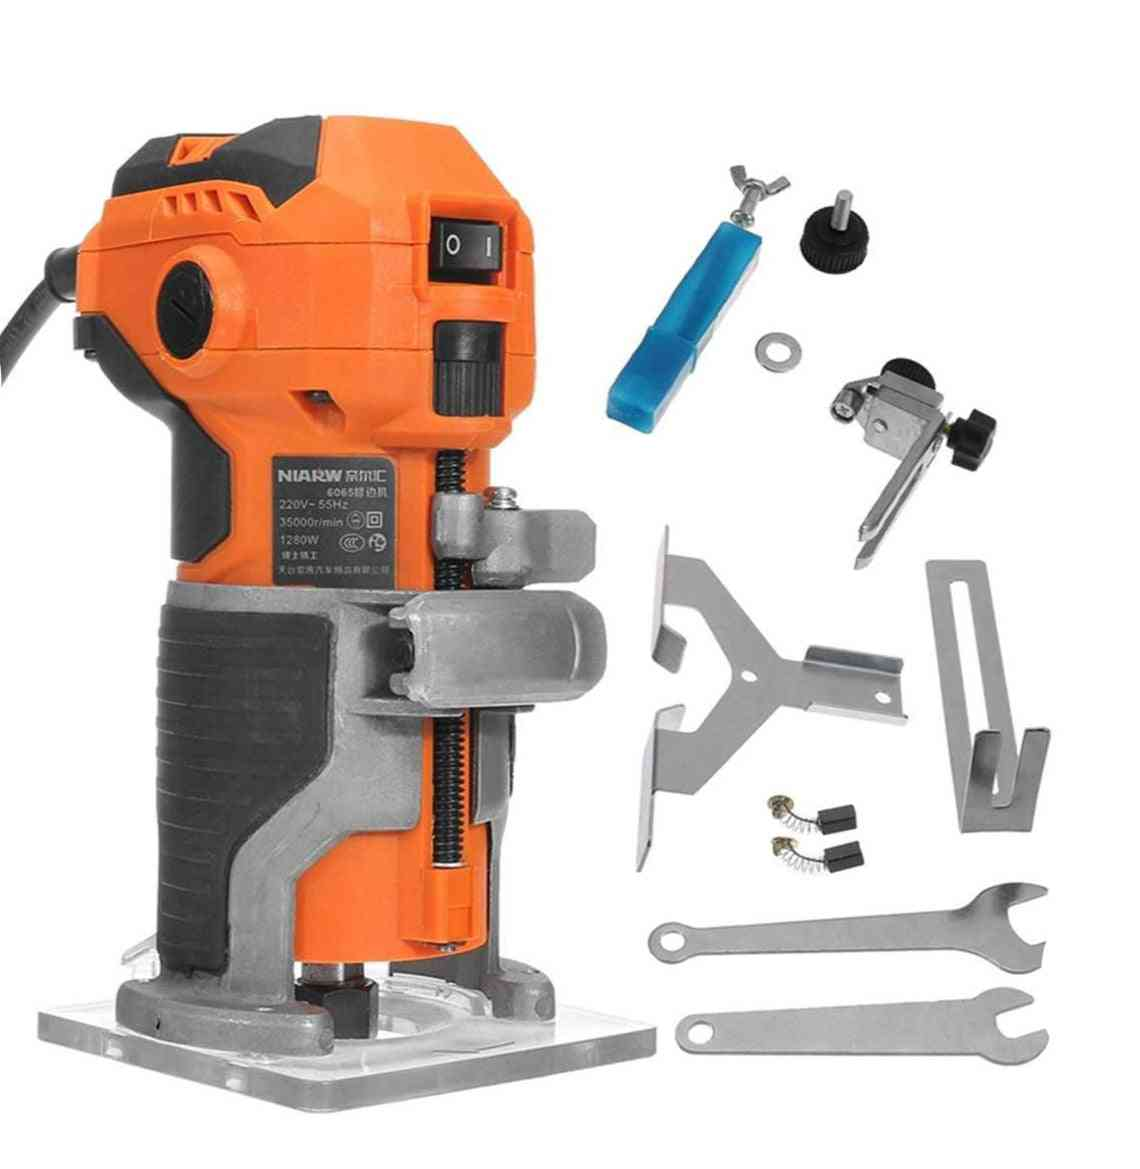 Wood Trimmer Electro Tools Router